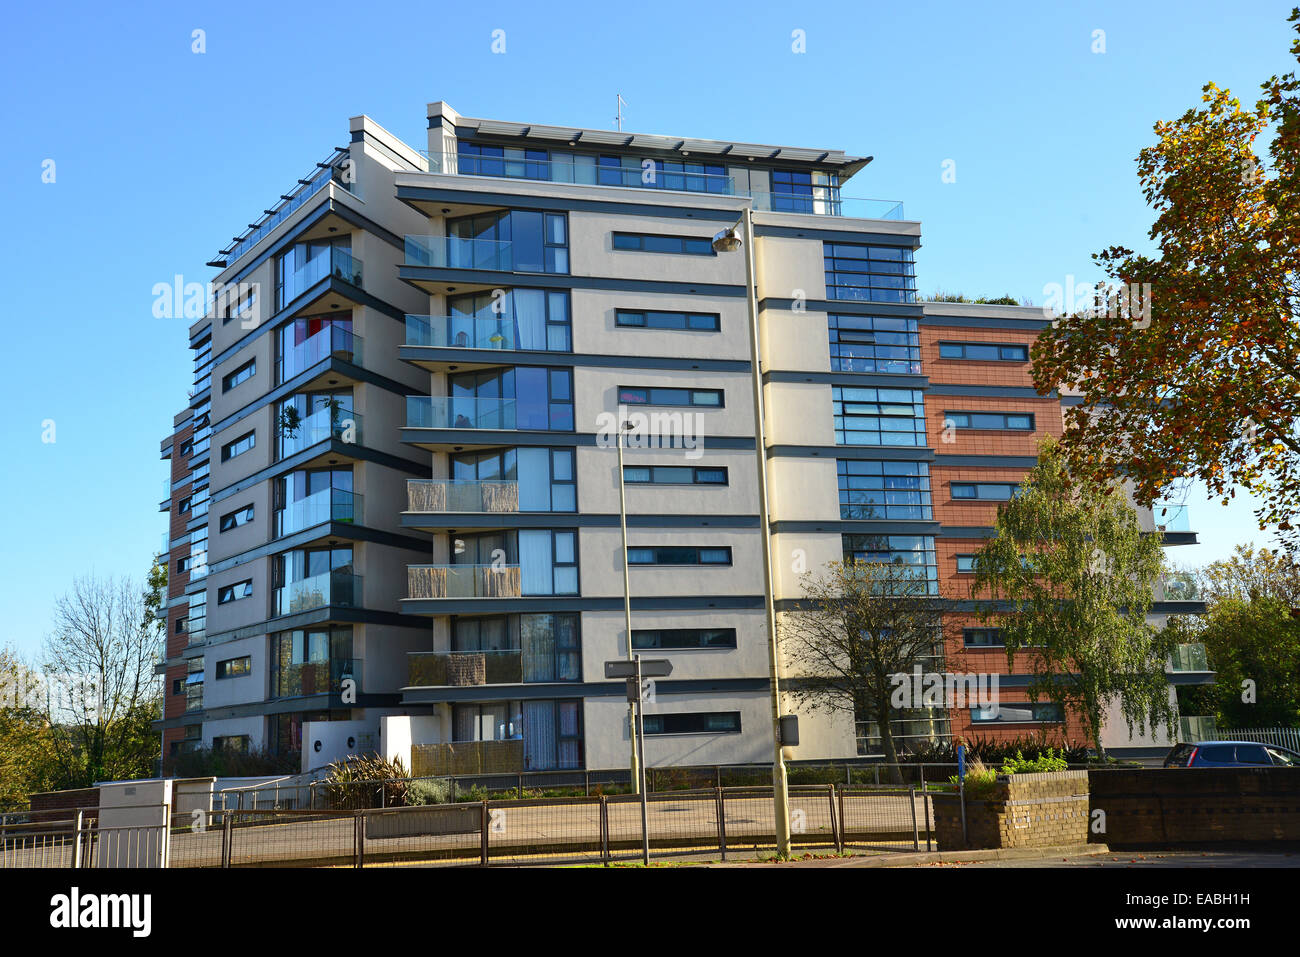 Modern Apartment Building, Beechen Grove, Watford, Hertfordshire, England,  United Kingdom